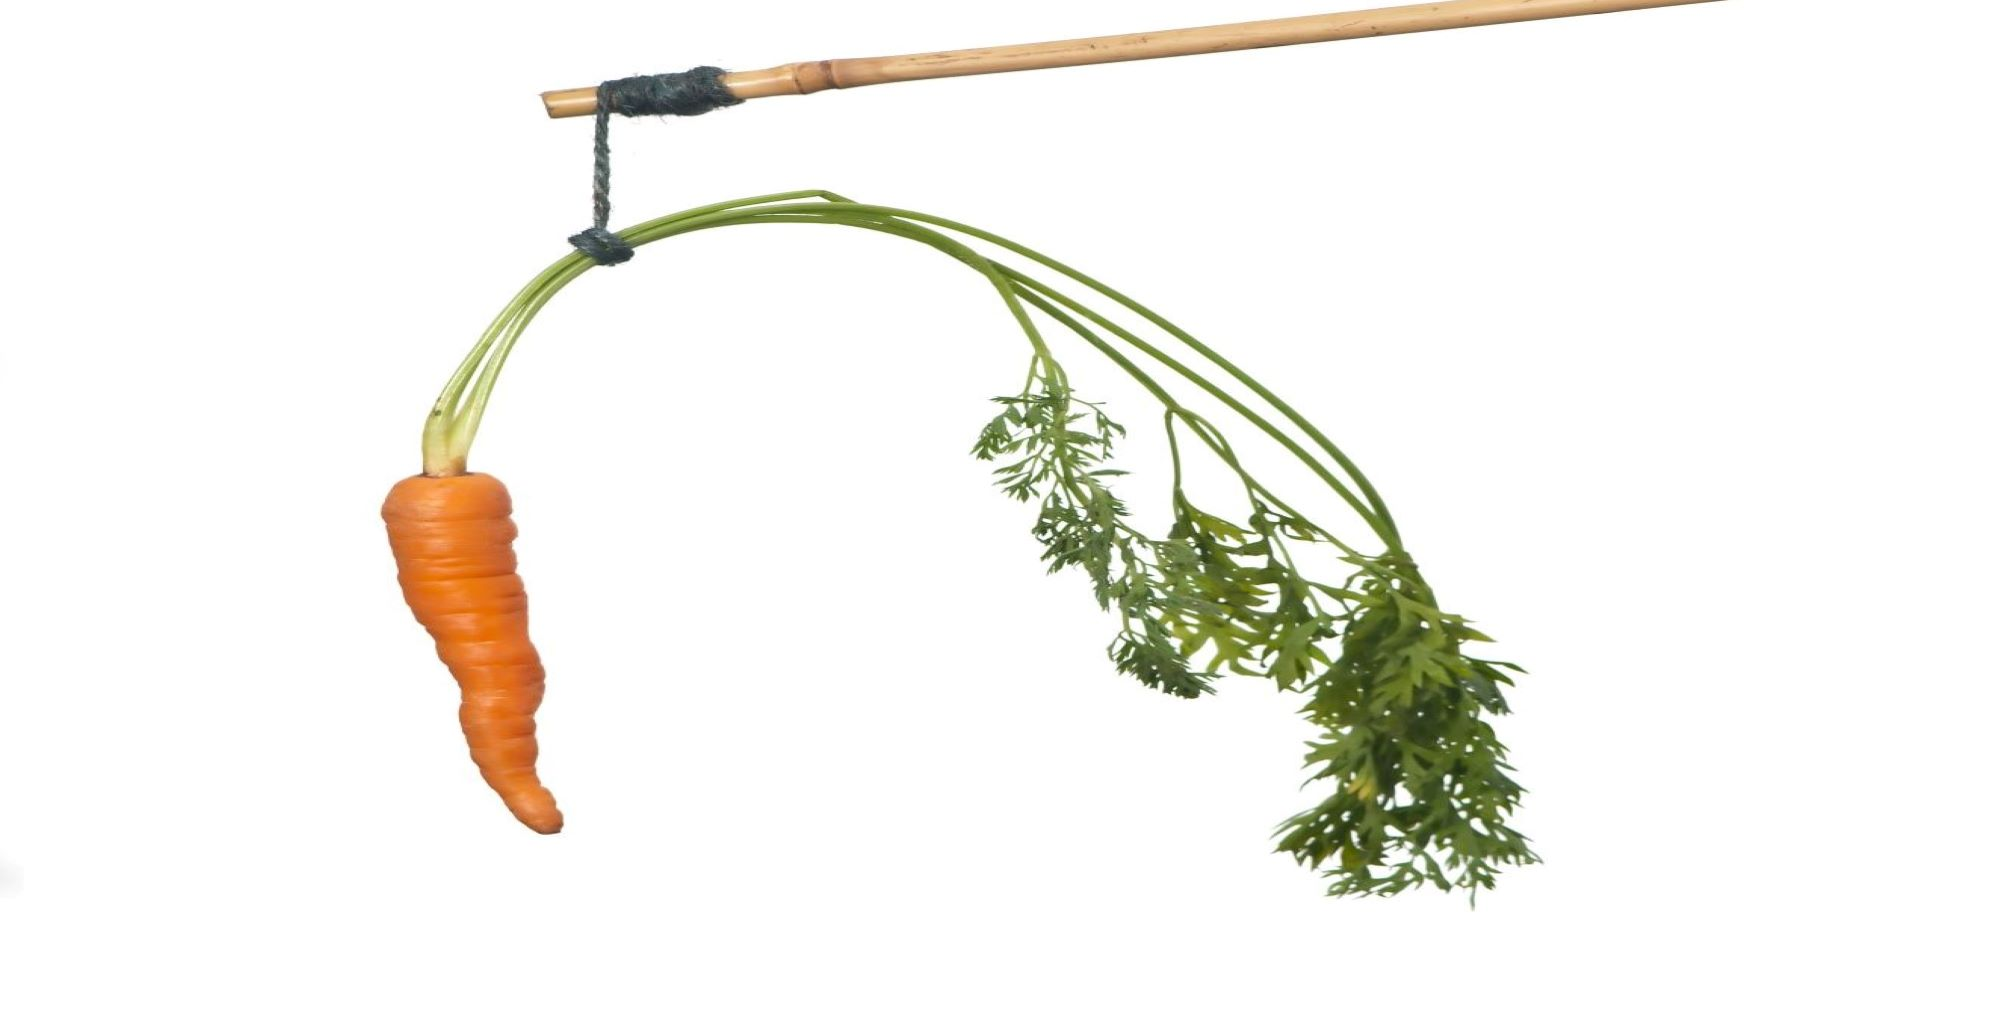 Carrot being dangled on a stick